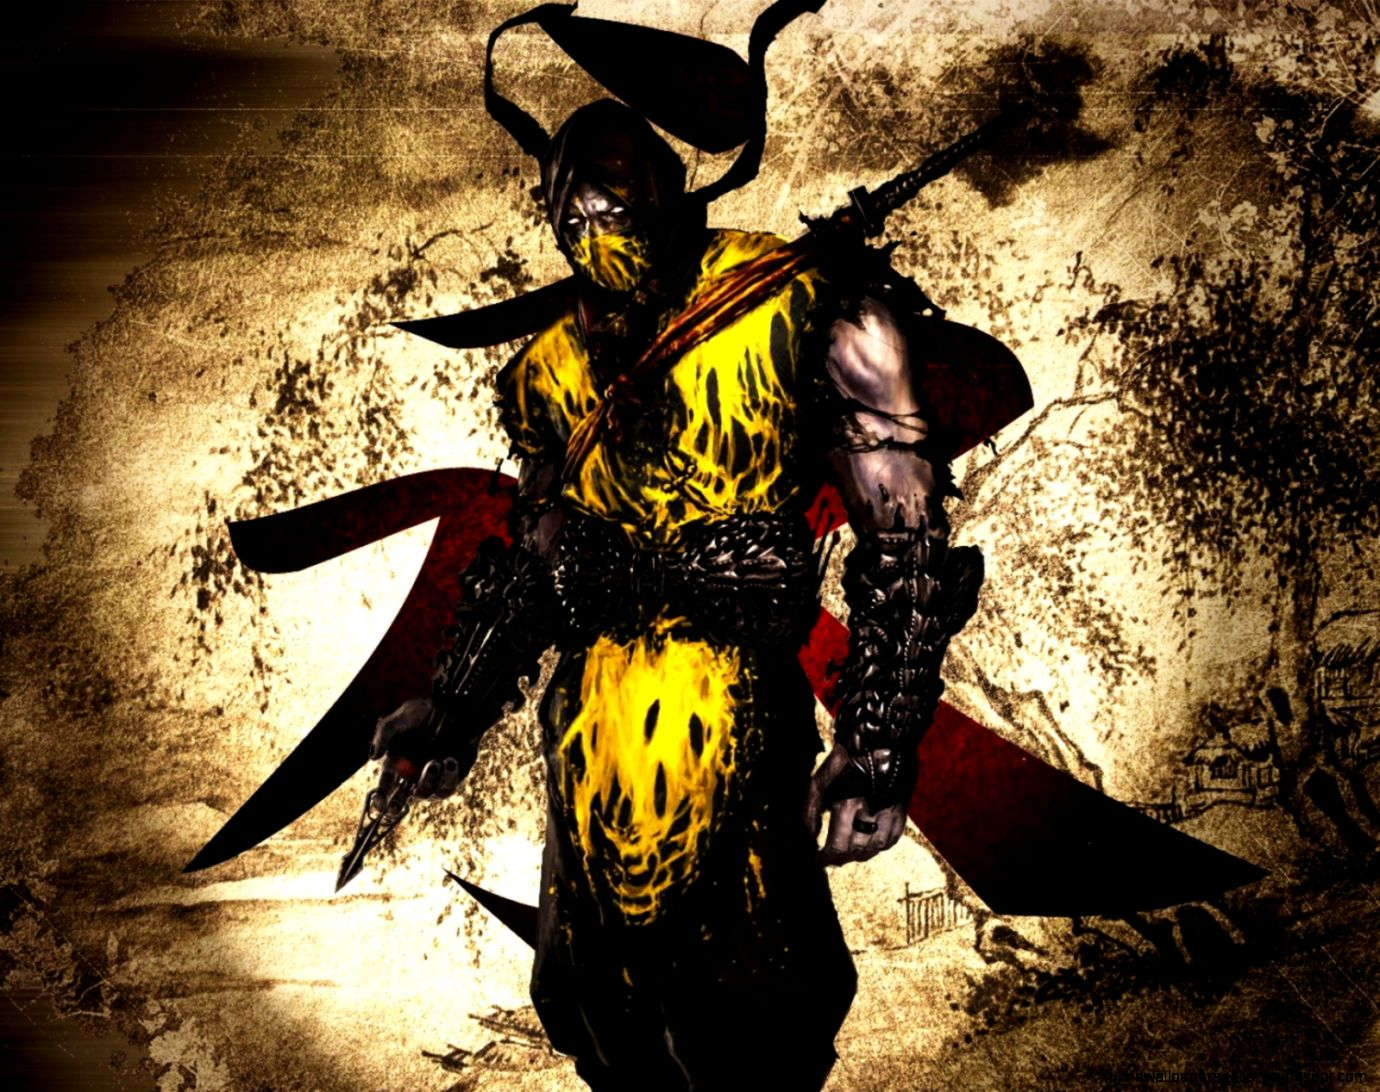 Mortal kombat scorpion wallpapers full hd wallpapers - Mortal kombat scorpion wallpaper ...